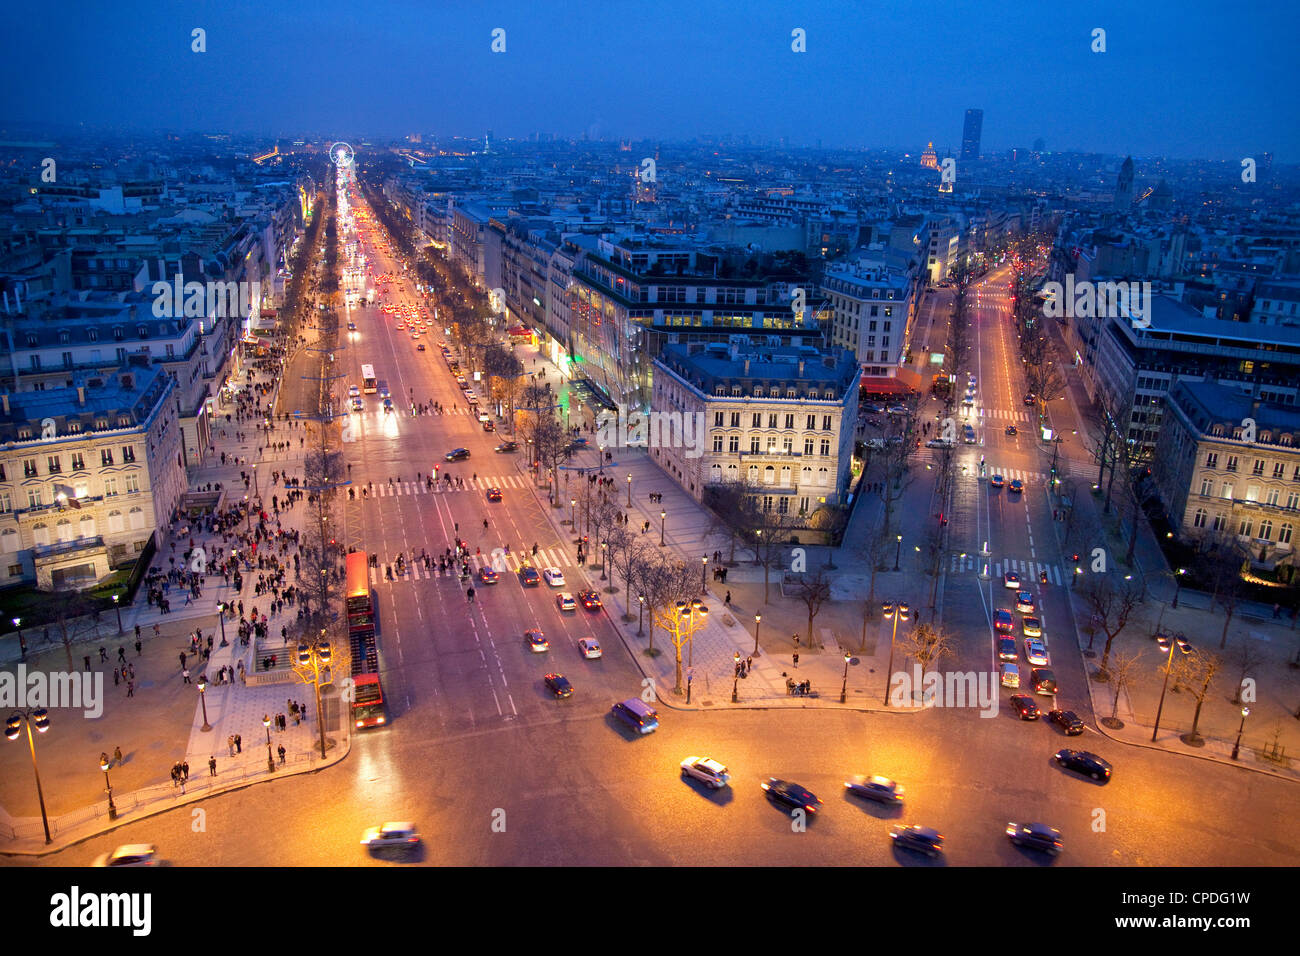 The Champs Elysees at night from the Arc de Triomphe, Paris, France, Europe - Stock Image